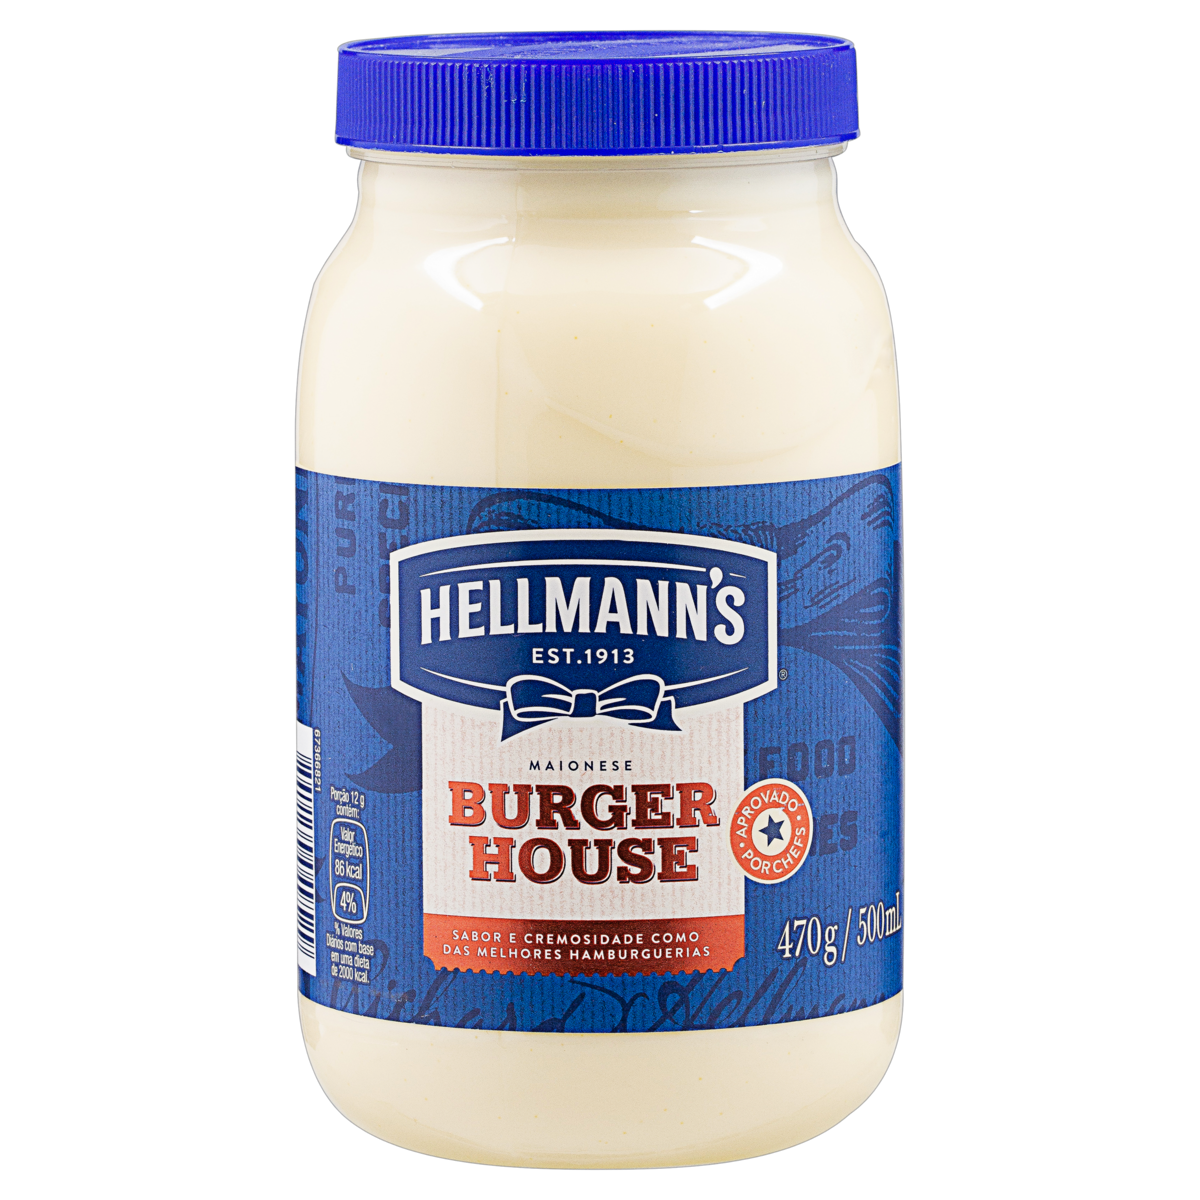 7891150049529 - MAIONESE HELLMANNS BURGER HOUSE POTE 470G